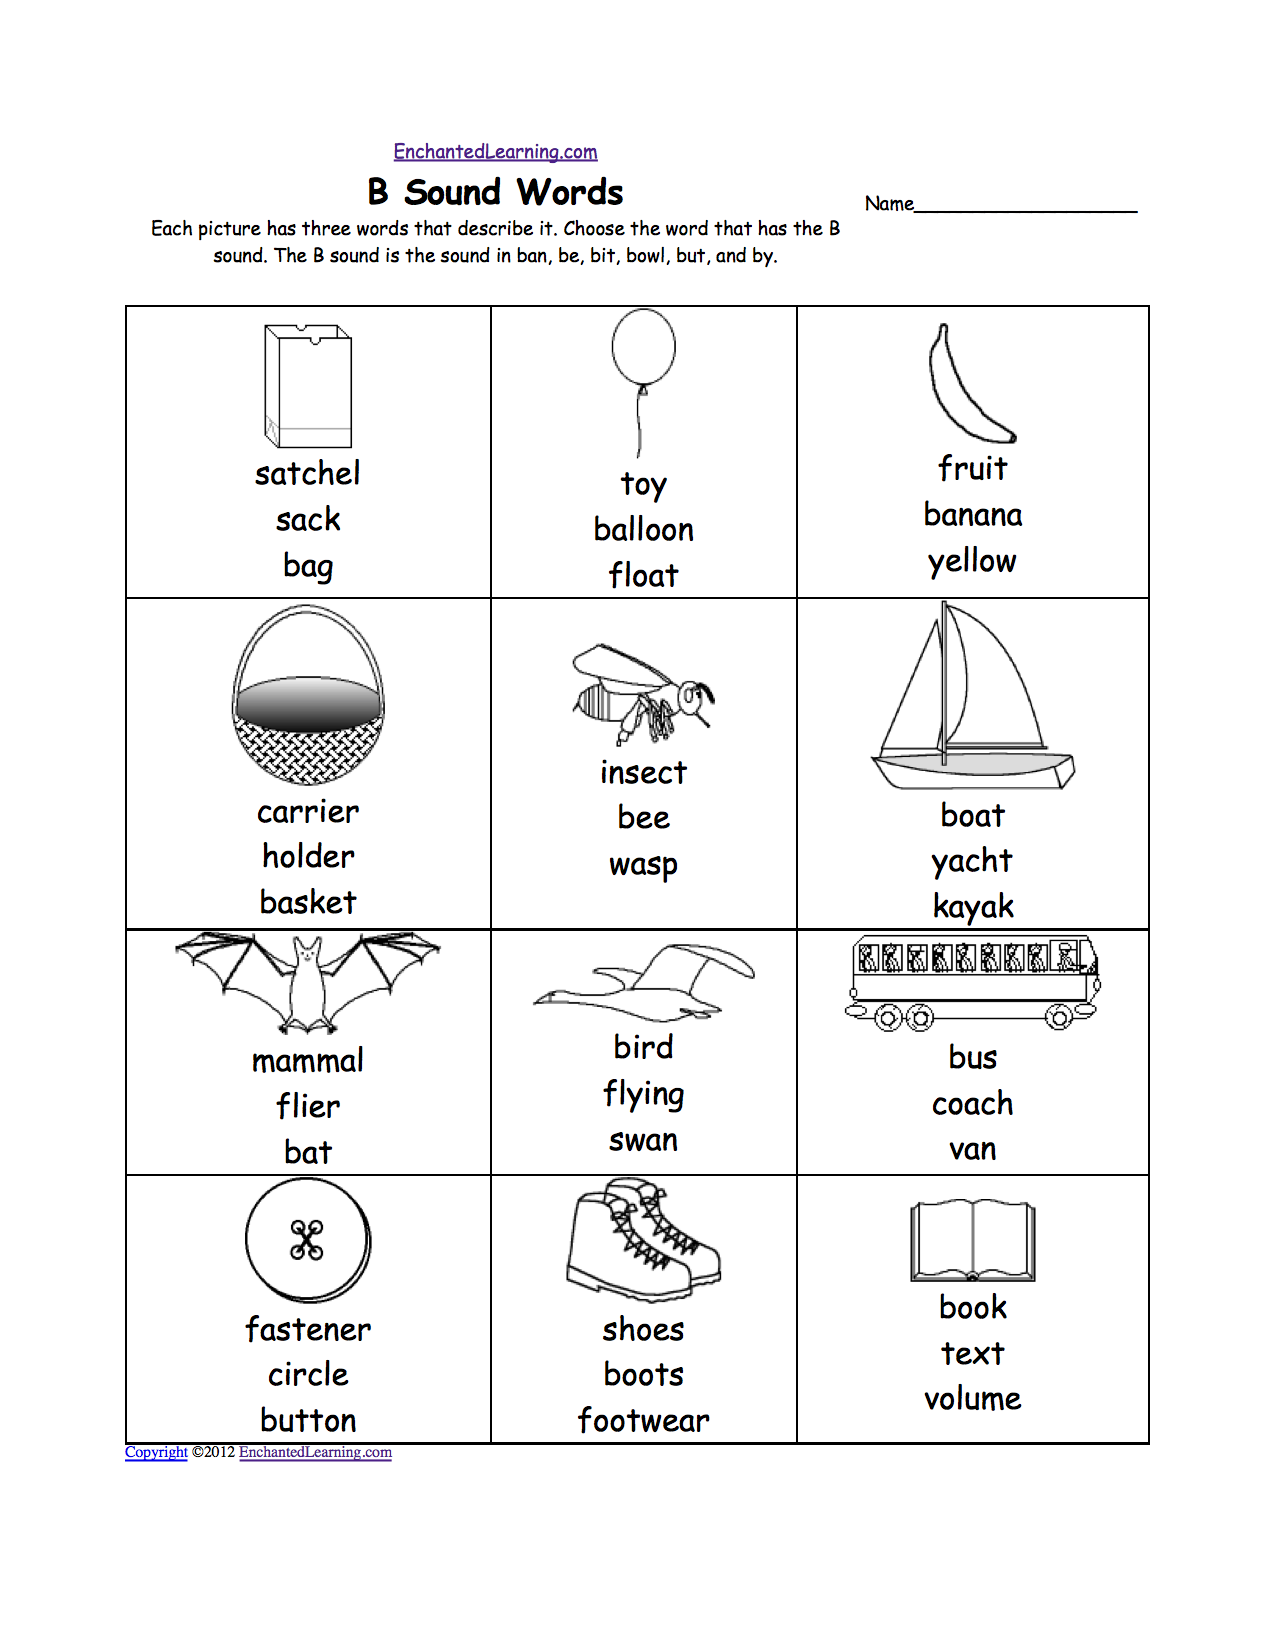 Aldiablosus  Nice Phonics Worksheets Multiple Choice Worksheets To Print  With Handsome Quotbquot Sound Phonics Worksheet Multiple Choice Each Picture Has Three Words That Describe It Choose The Word That Has A Quotbquot Sound The Quotbquot Sound Is The Sound  With Extraordinary Sideways Stories From Wayside School Worksheets Also Split Worksheet Excel In Addition Native Americans Worksheets And E Mc Worksheet As Well As Long Division Practice Worksheets Th Grade Additionally Pronoun Usage Worksheet From Enchantedlearningcom With Aldiablosus  Handsome Phonics Worksheets Multiple Choice Worksheets To Print  With Extraordinary Quotbquot Sound Phonics Worksheet Multiple Choice Each Picture Has Three Words That Describe It Choose The Word That Has A Quotbquot Sound The Quotbquot Sound Is The Sound  And Nice Sideways Stories From Wayside School Worksheets Also Split Worksheet Excel In Addition Native Americans Worksheets From Enchantedlearningcom